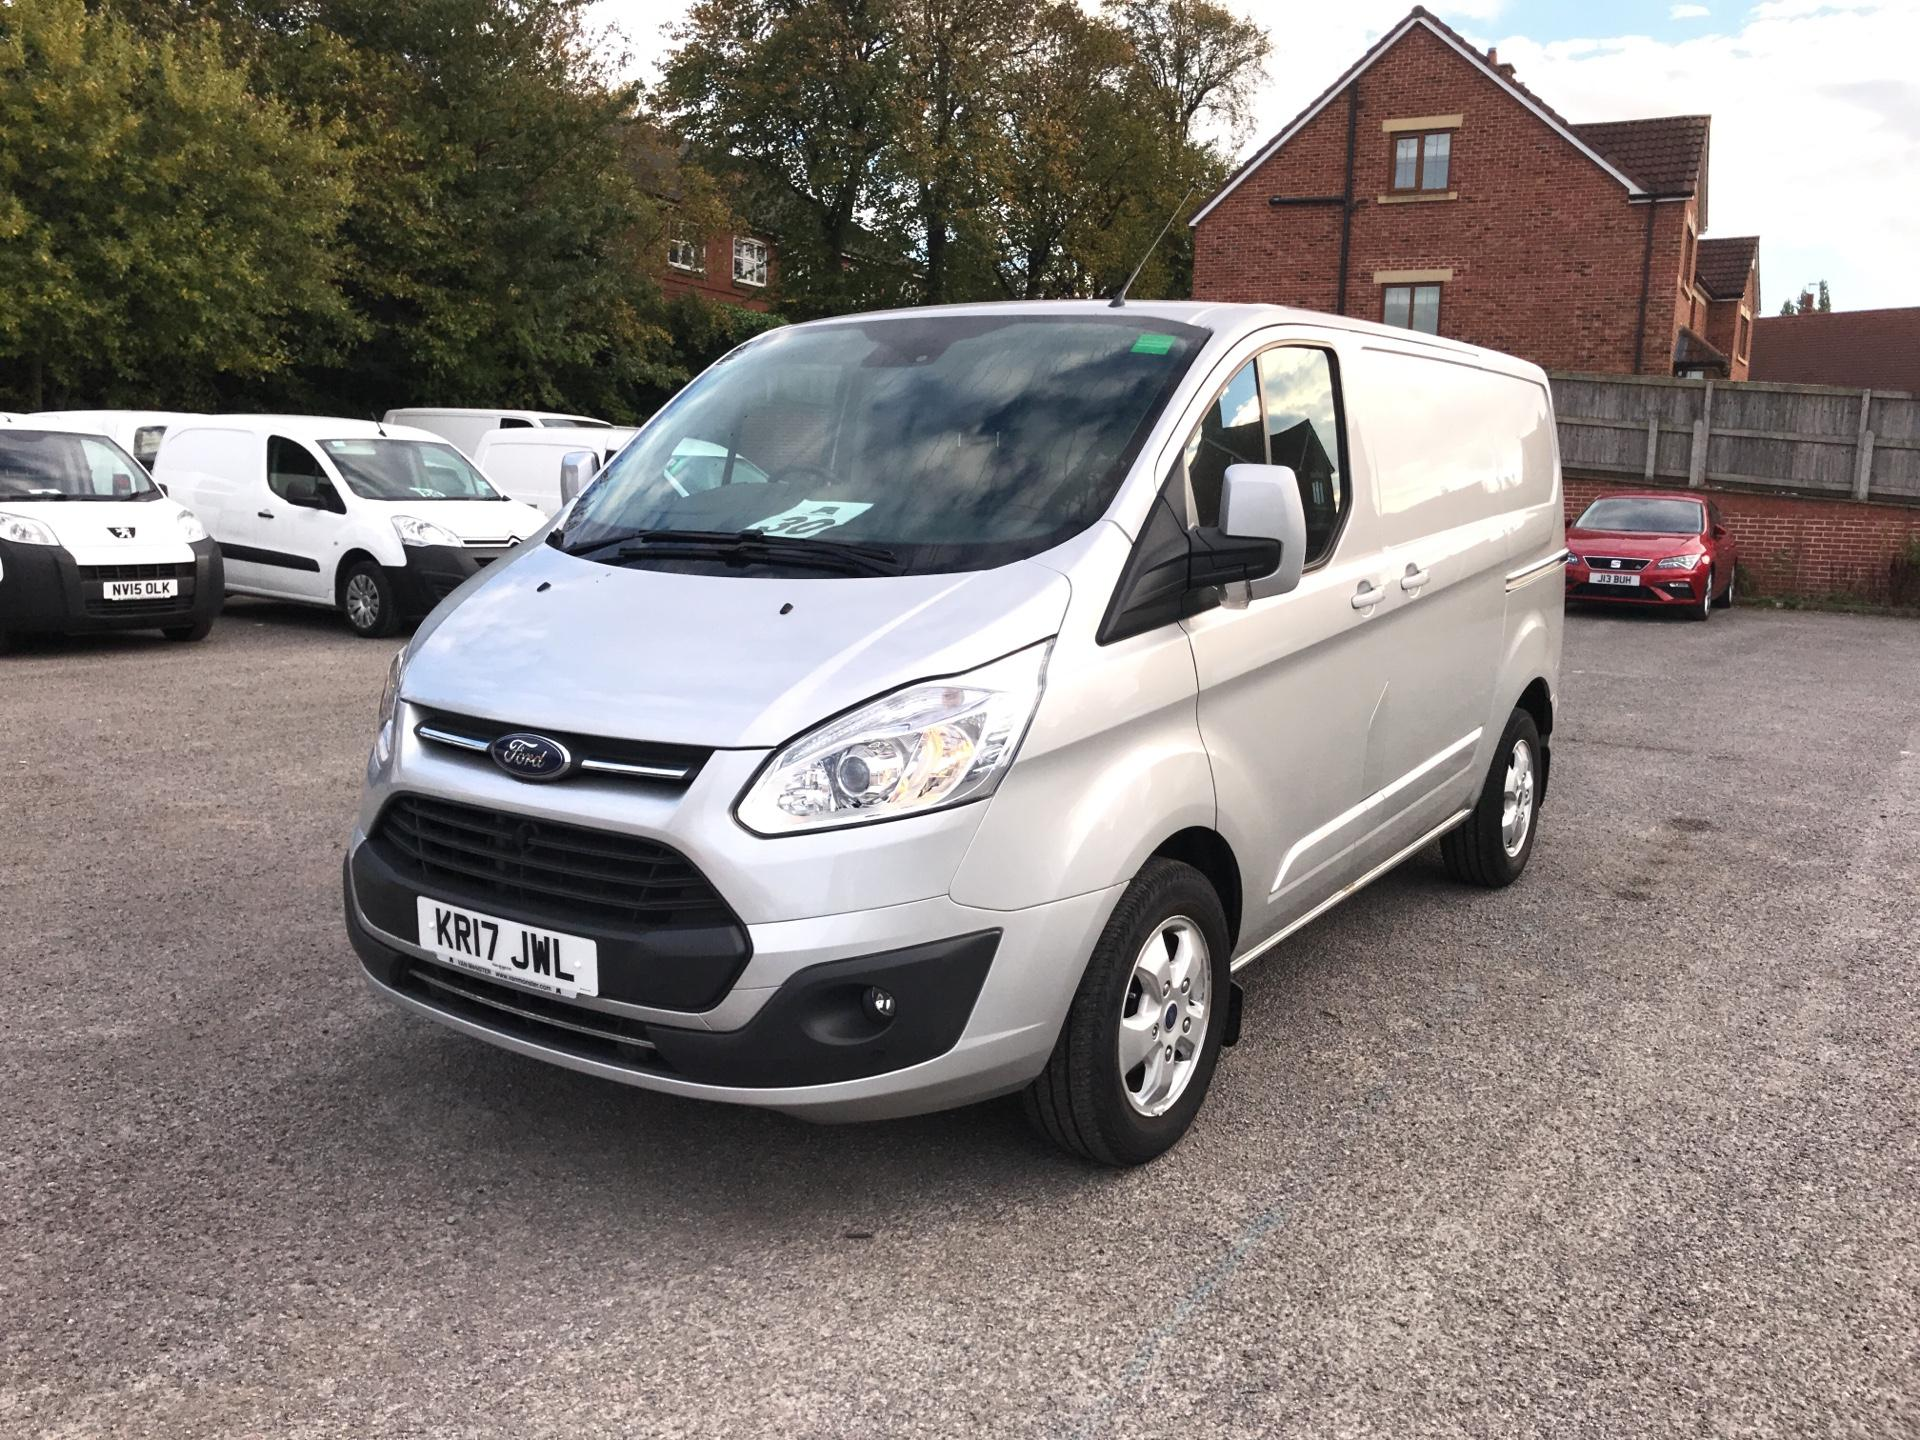 2017 Ford Transit Custom 270 L1 DIESEL FWD 2.0 TDCI 130PS LOW ROOF LIMITED VAN EURO 6 (KR17JWL) Image 7